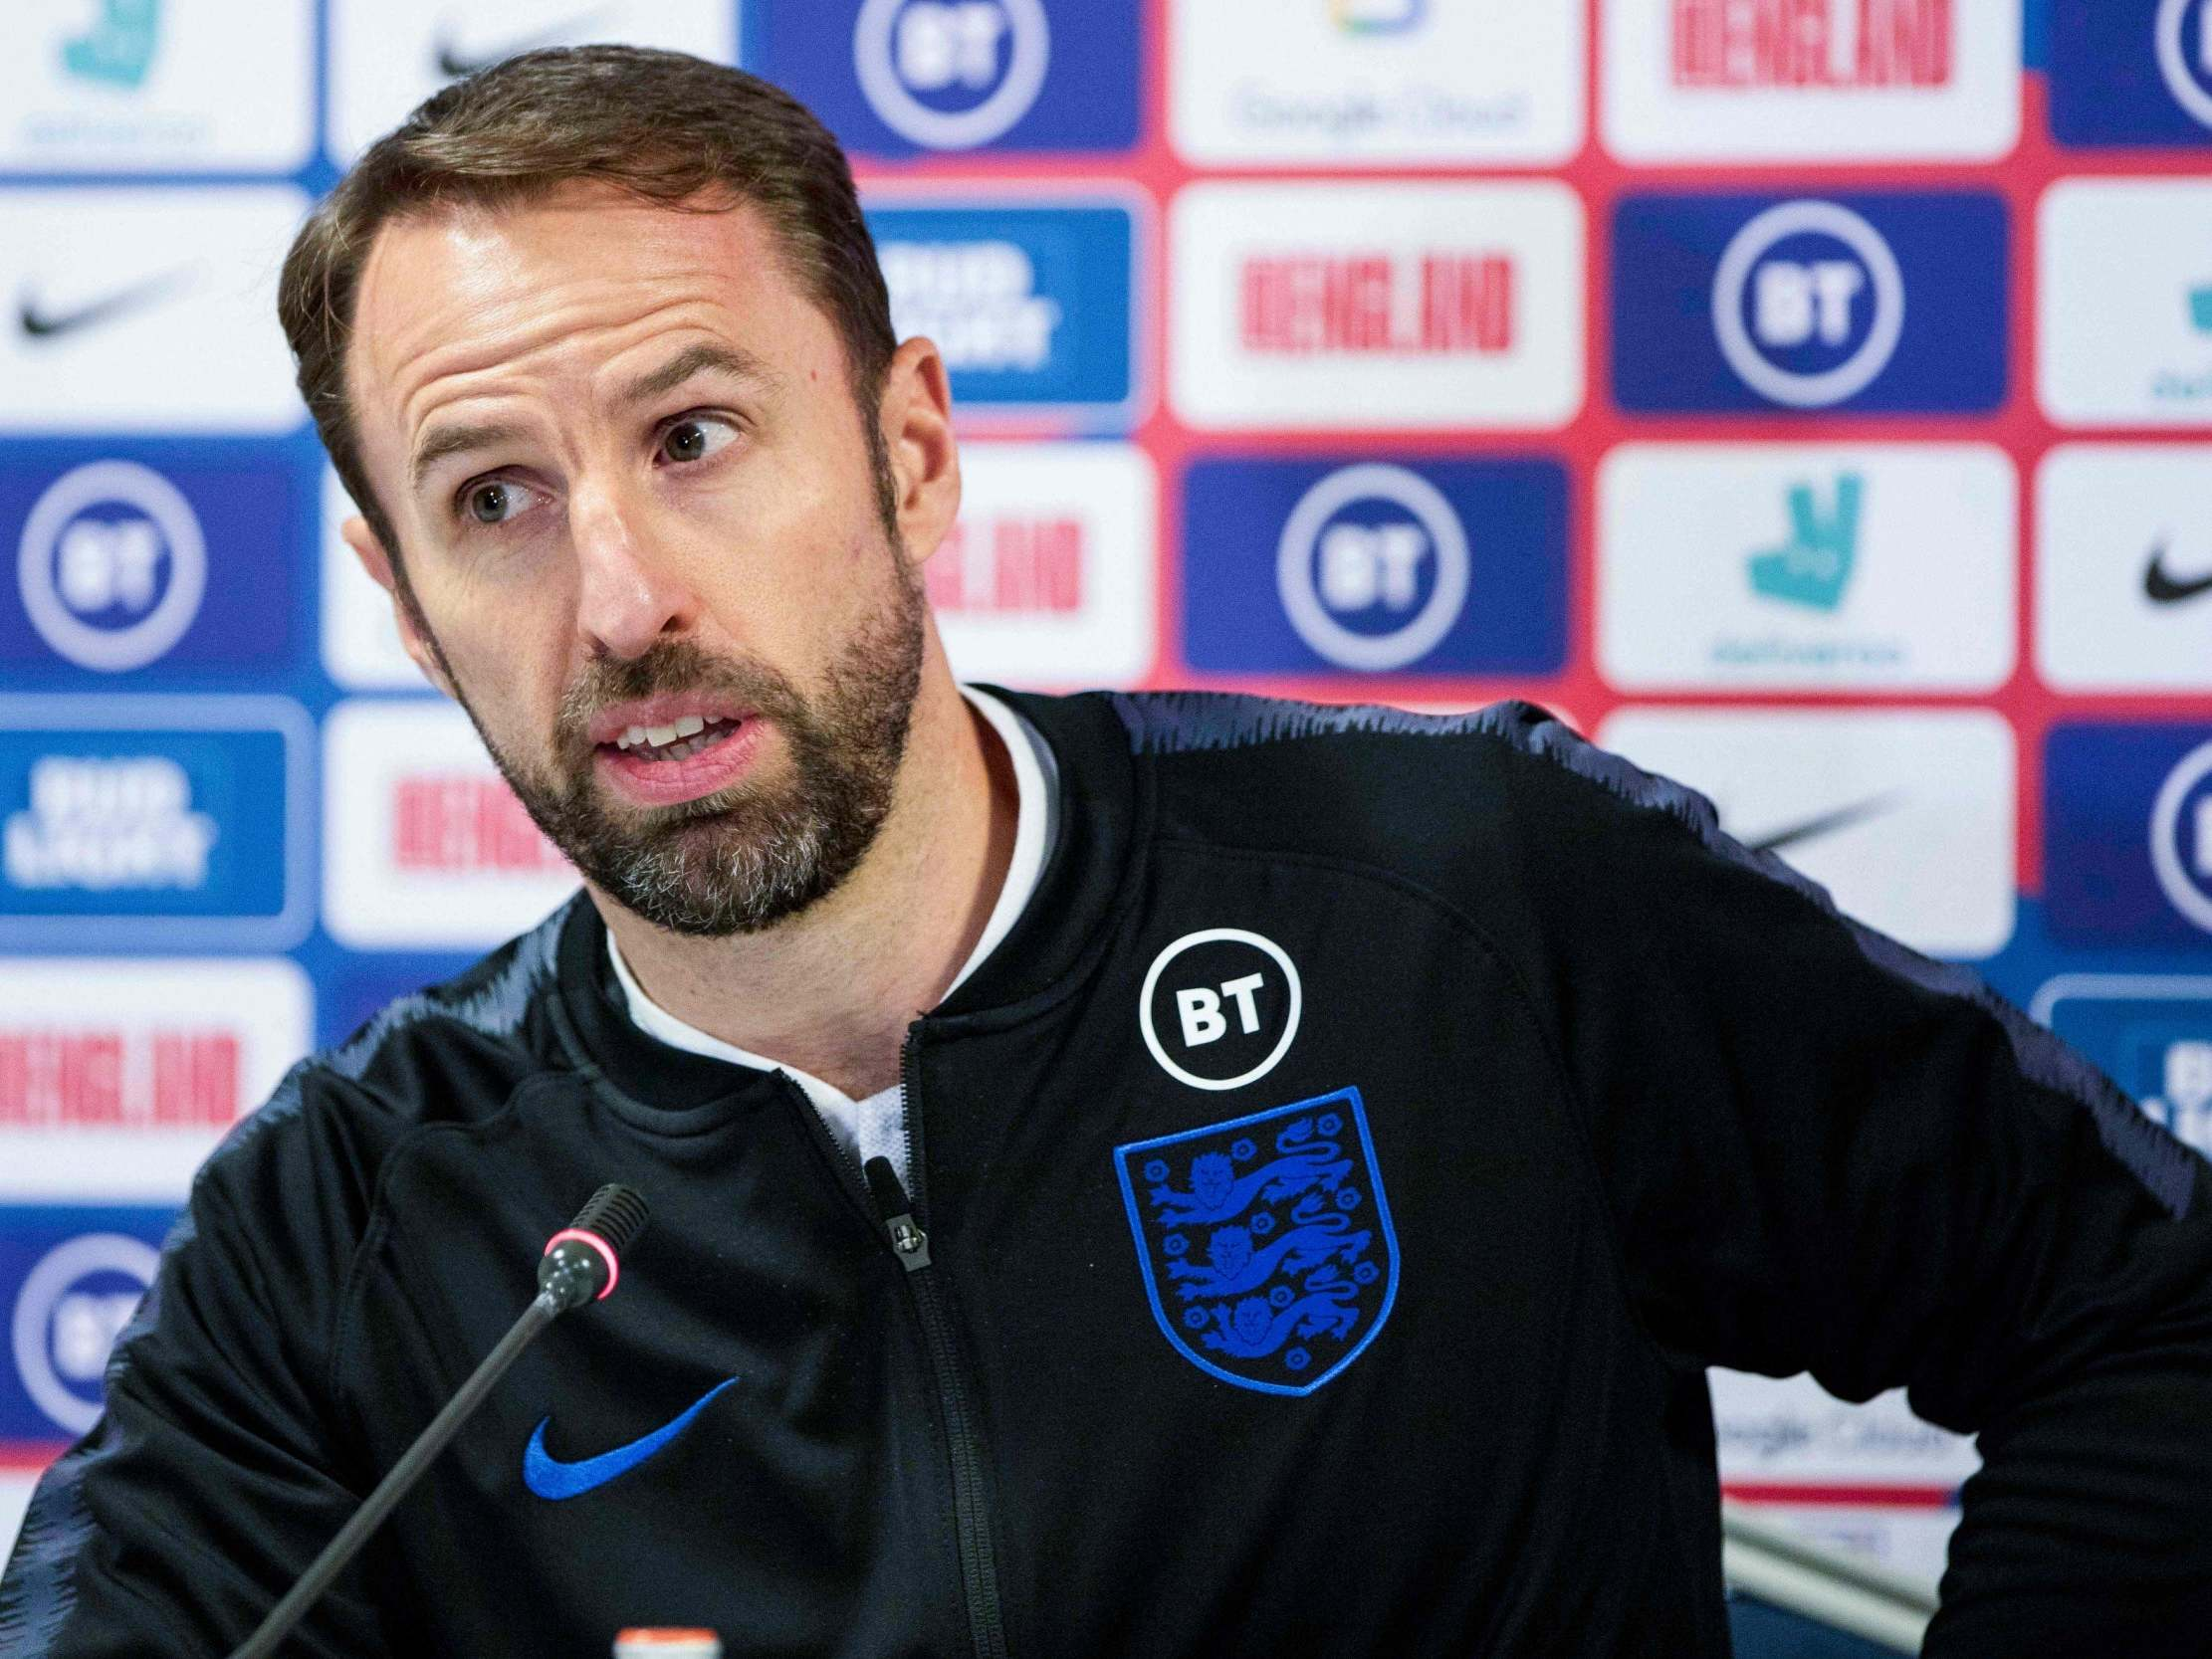 England: It's right time for Joe Gomez to clear head, says Southgate